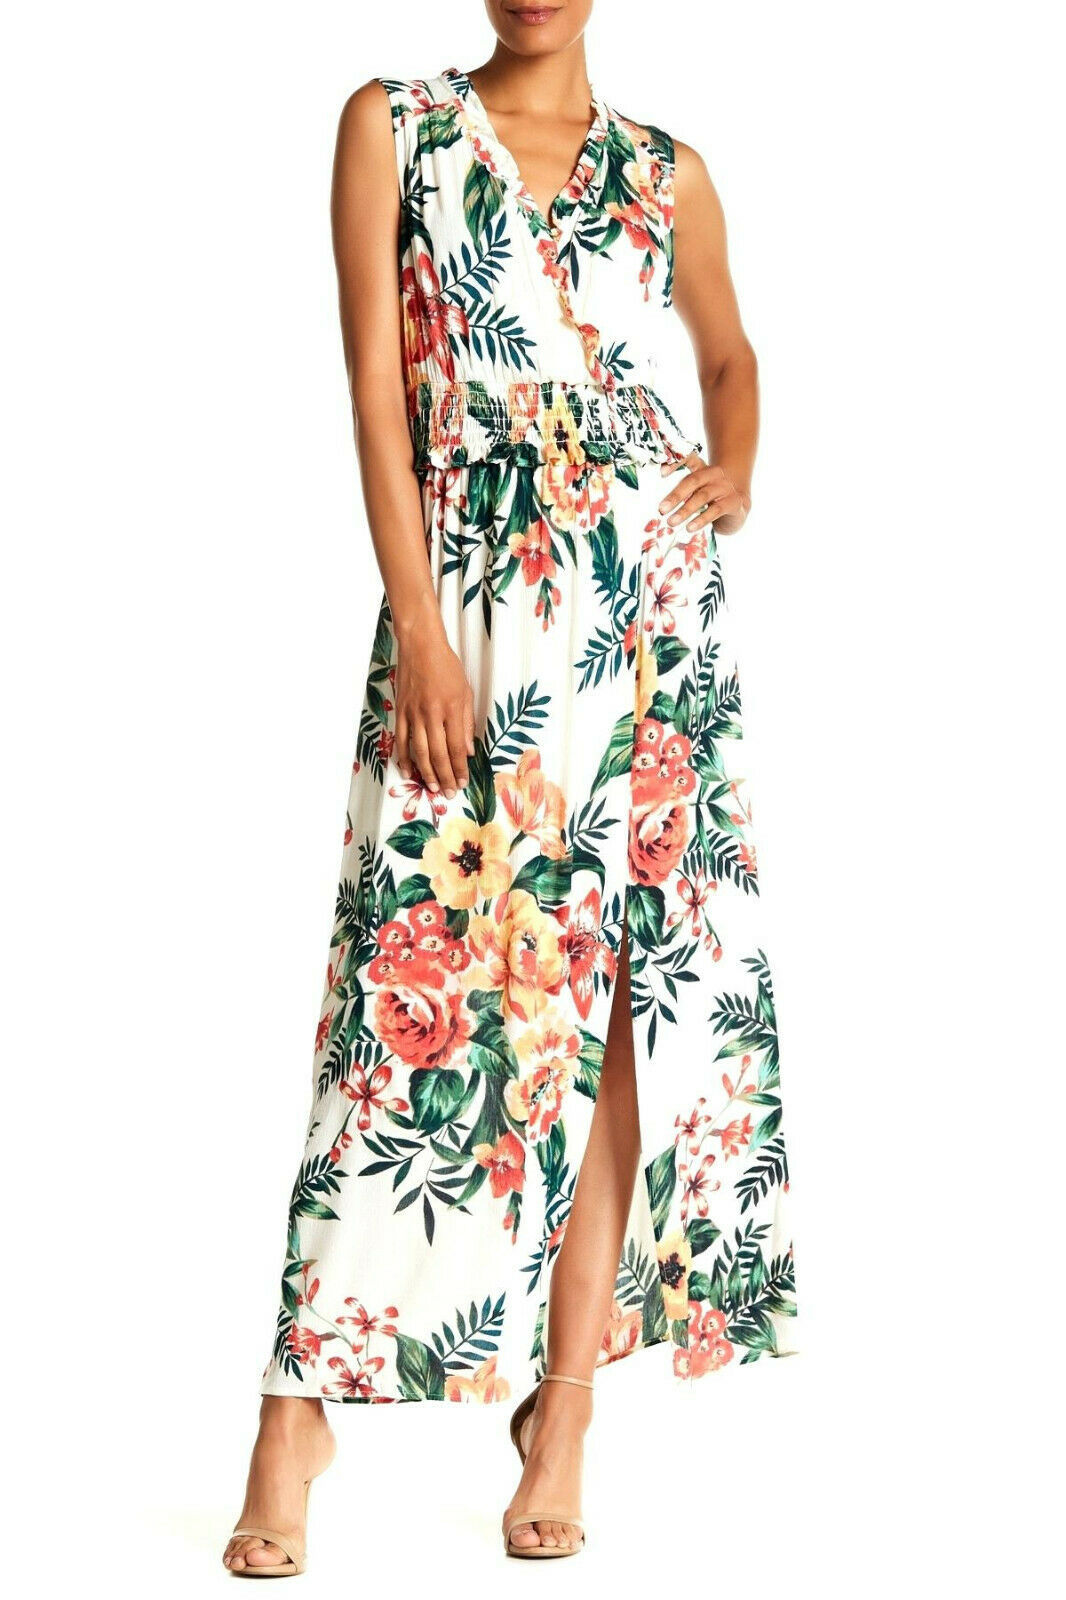 Primary image for ECI Ivory Floral Print Sleeveless Ruffle Trim Maxi Dress Size Small $128